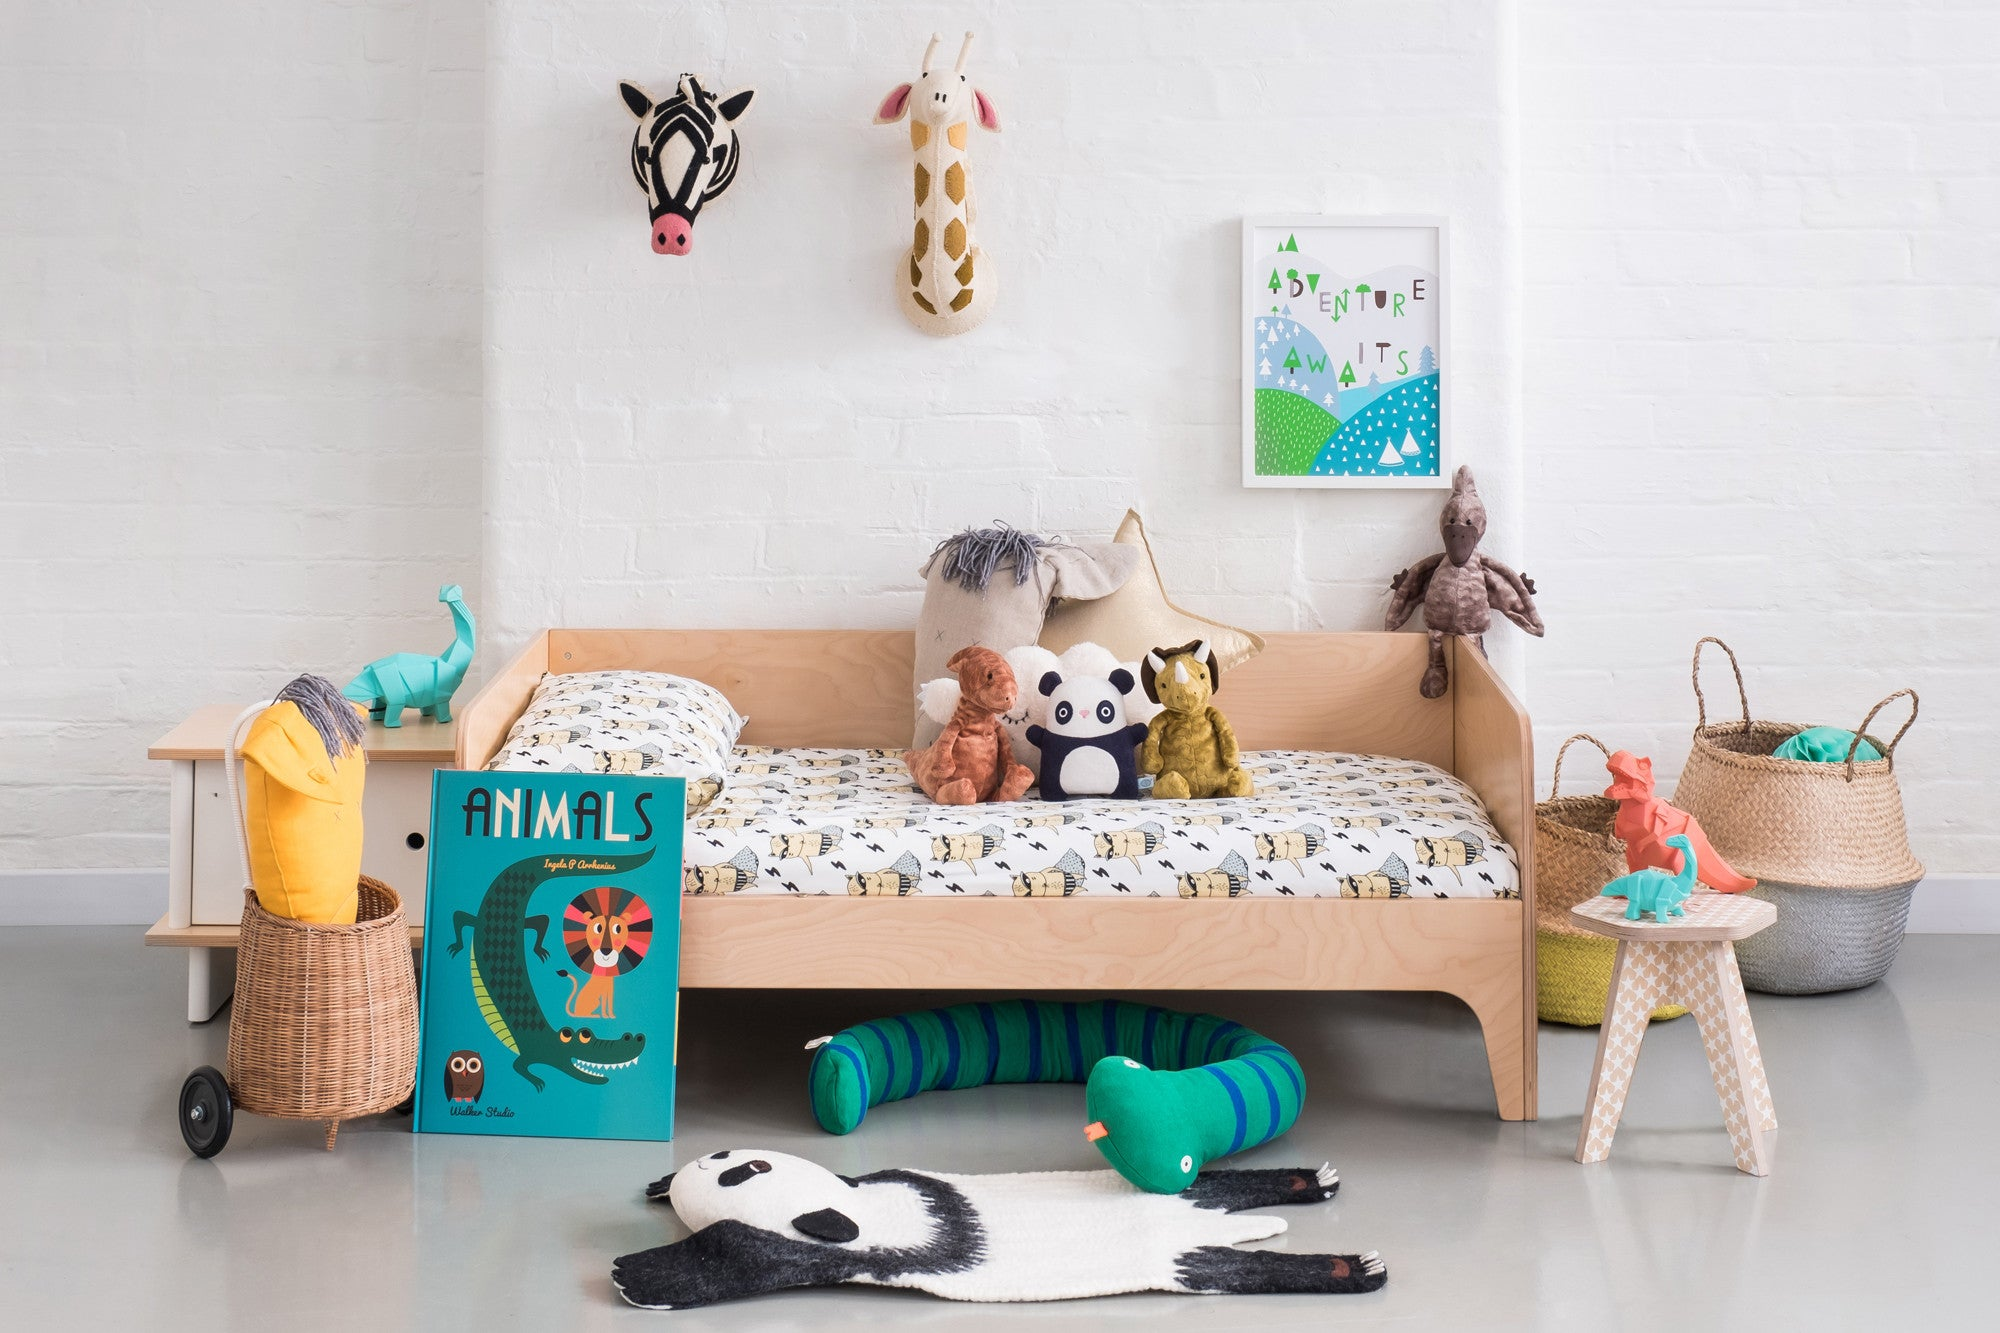 Animal Adventure Children's Room, styled by Bobby Rabbit.